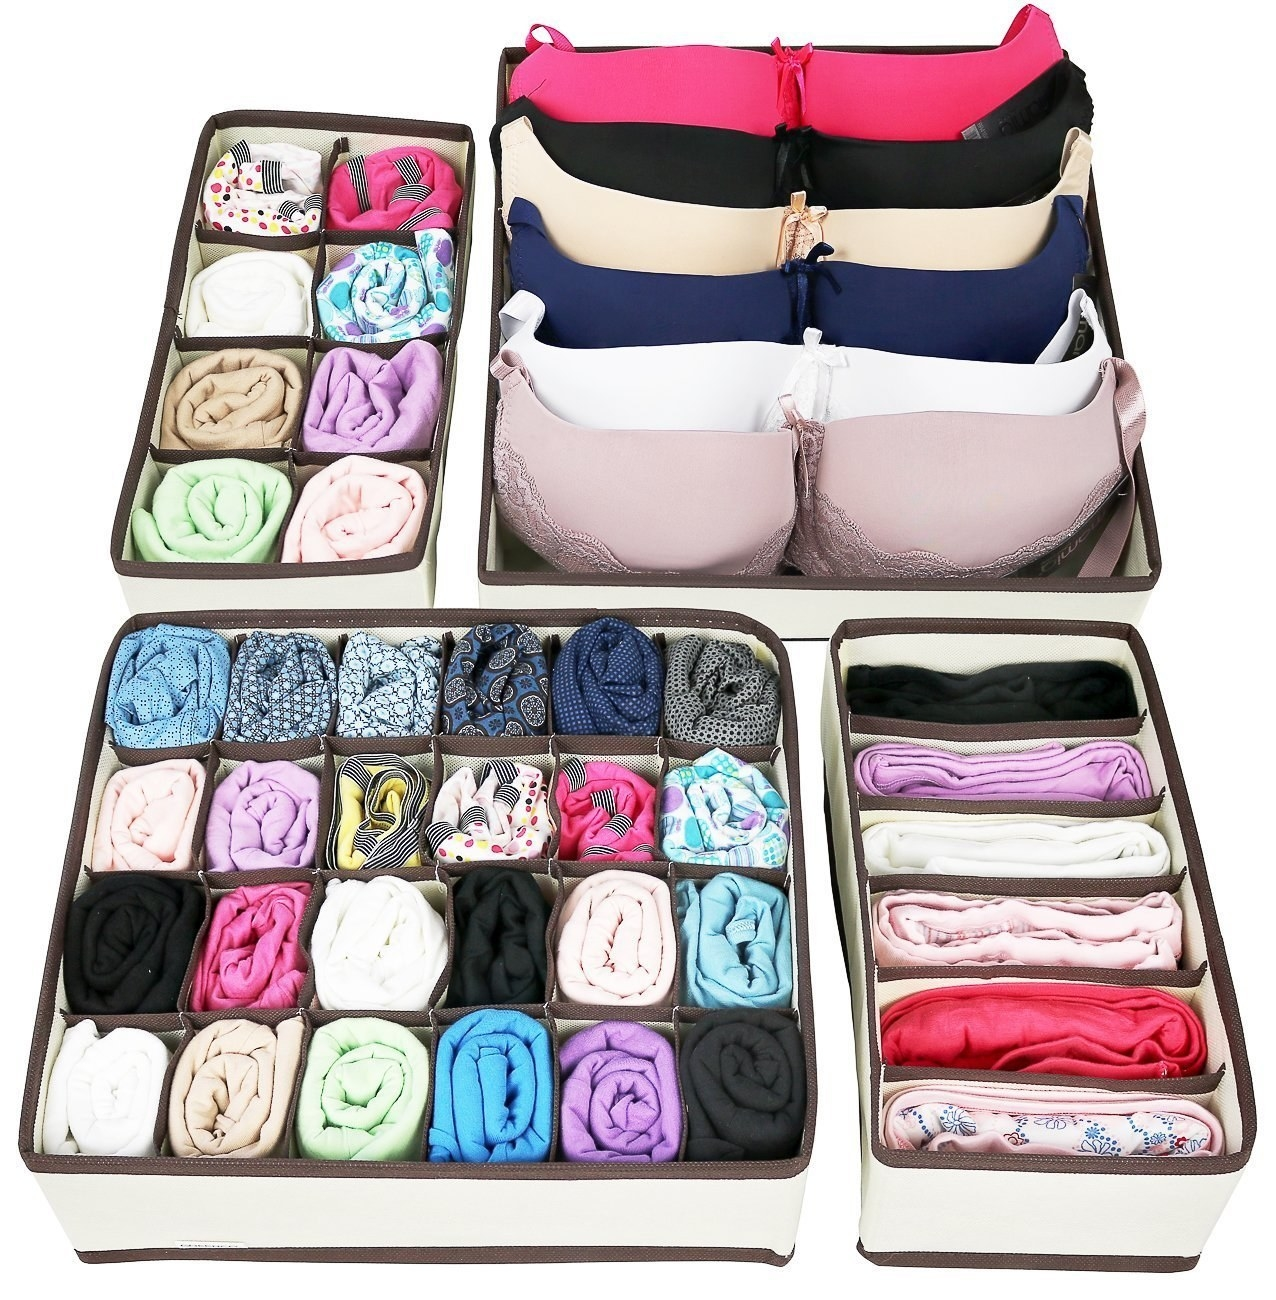 You get a set of four bins to hold socks, underwear, bras, and neckties.Get them from Walmart for $10.99.